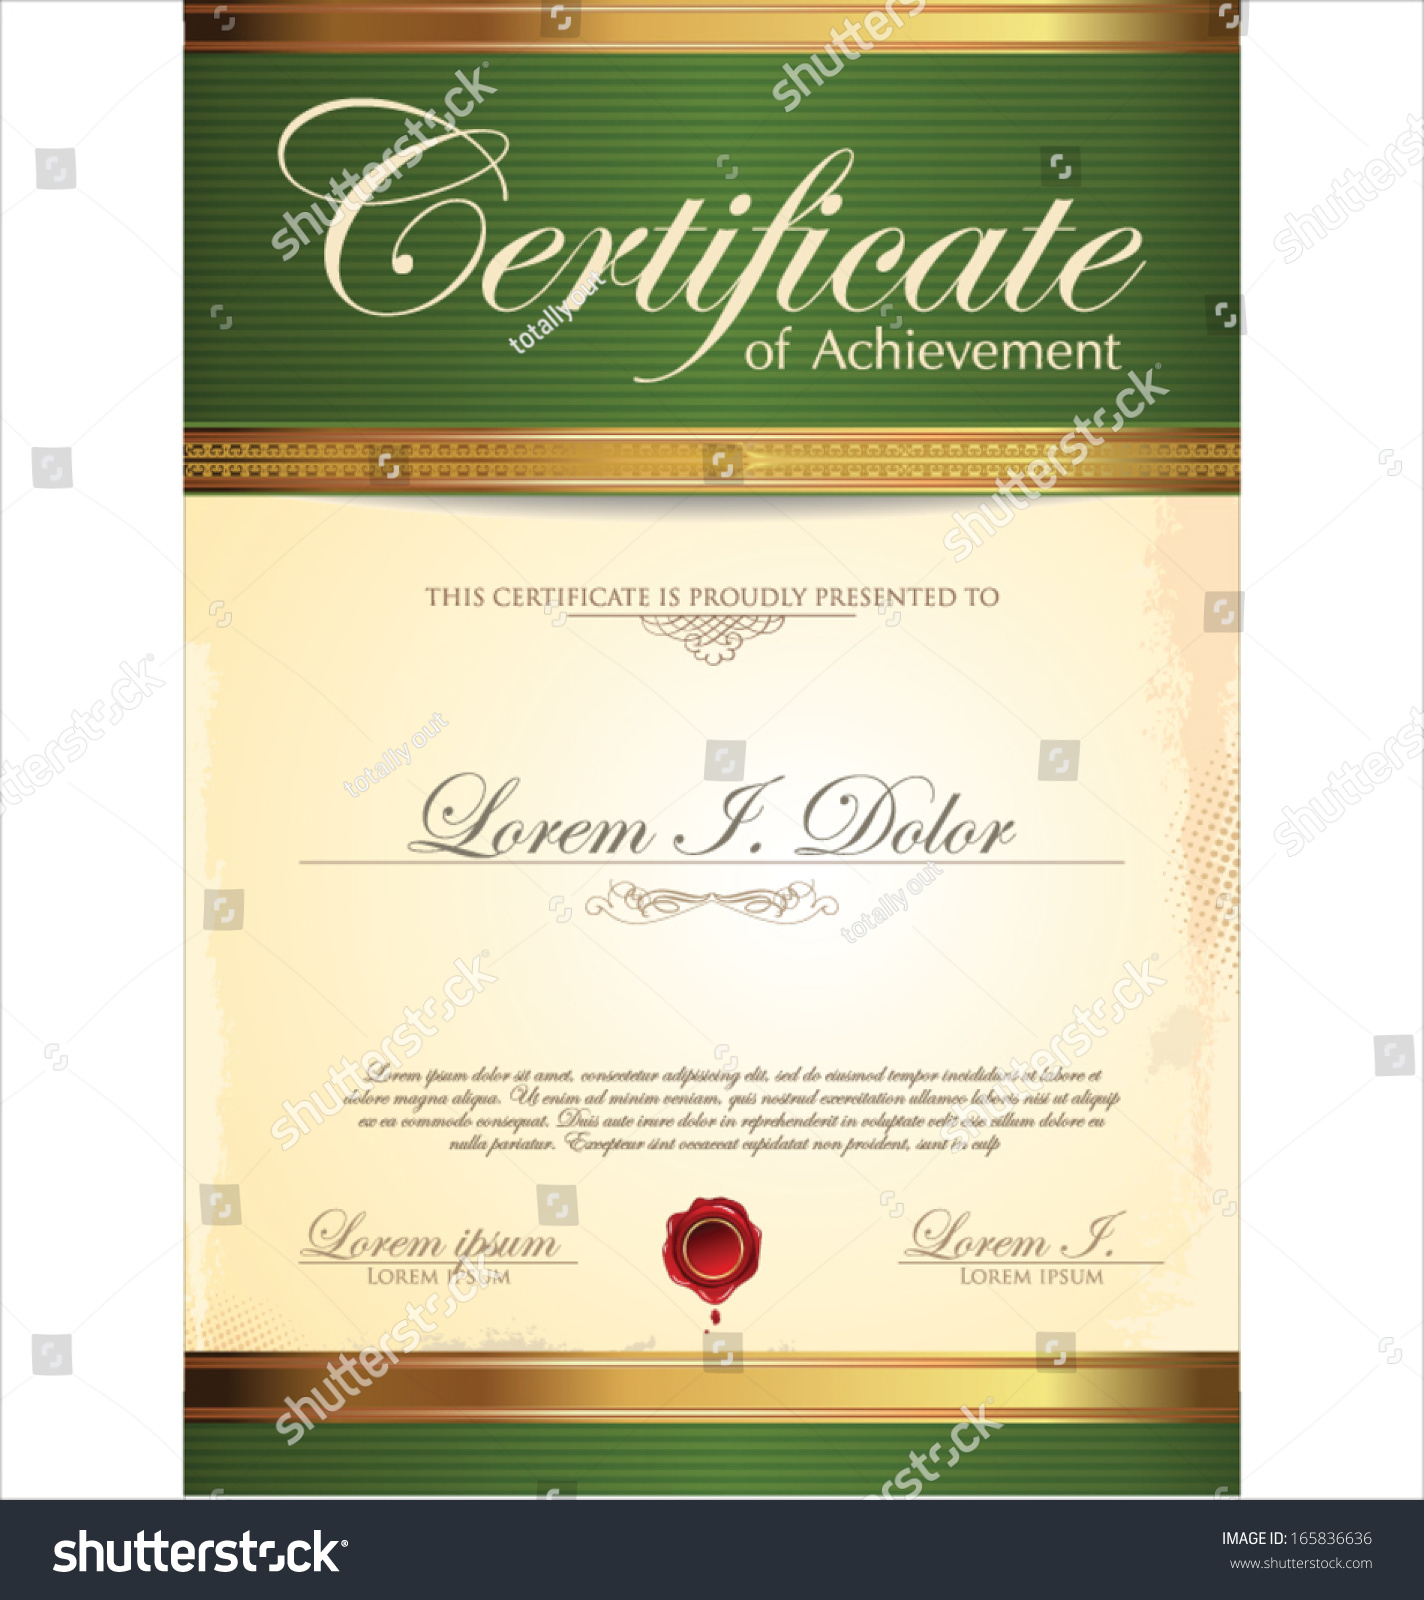 Green And Gold Certificate Template Stock Vector Illustration ...